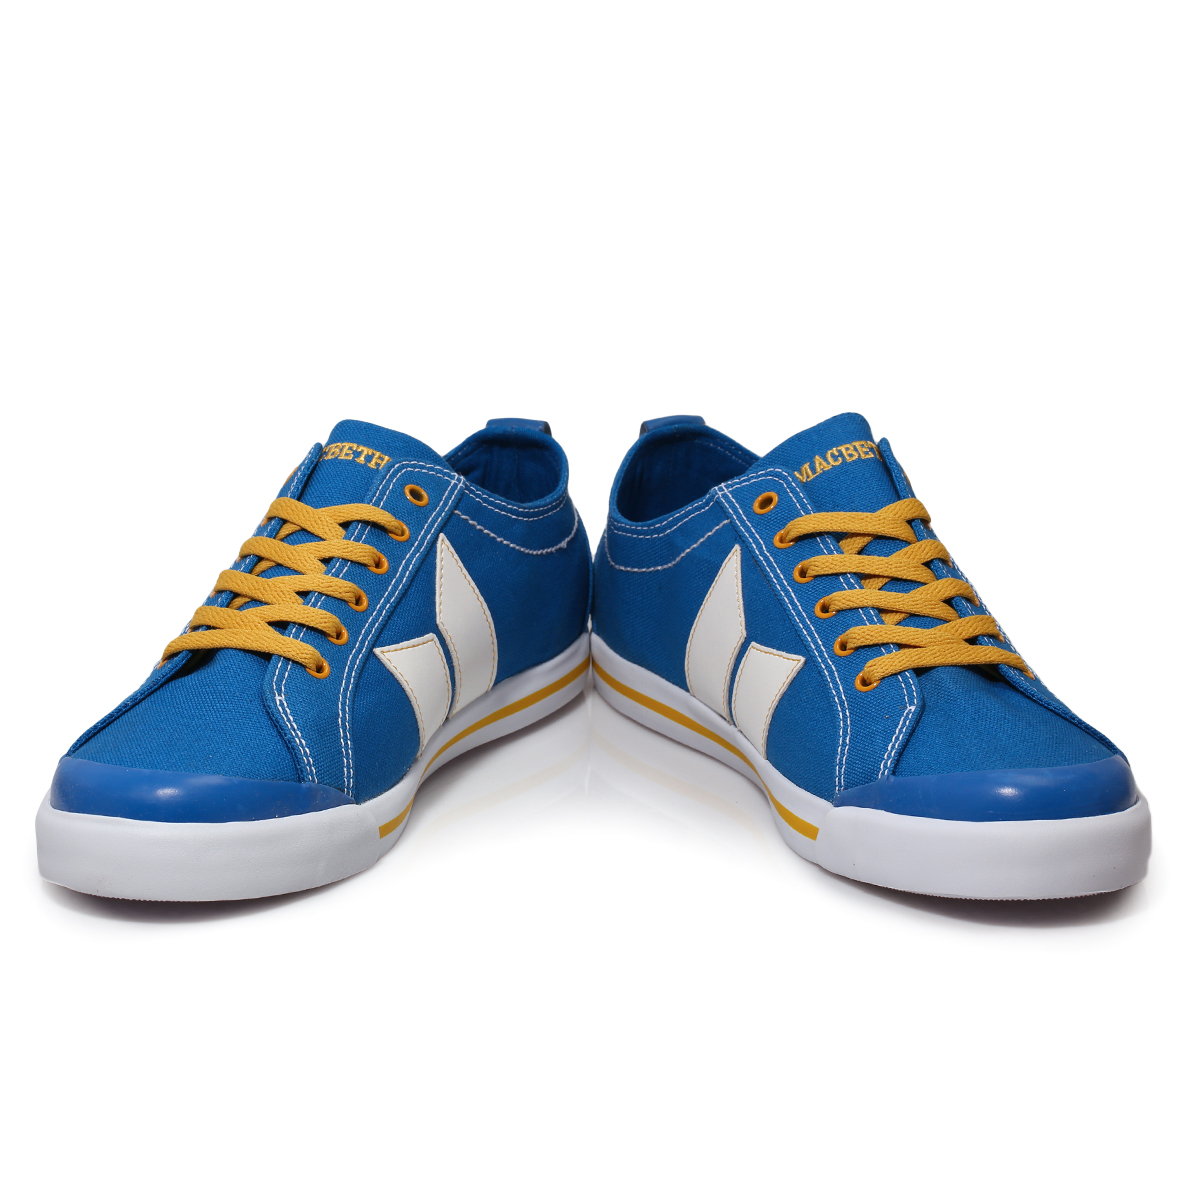 Macbeth Mens Shoes Uk